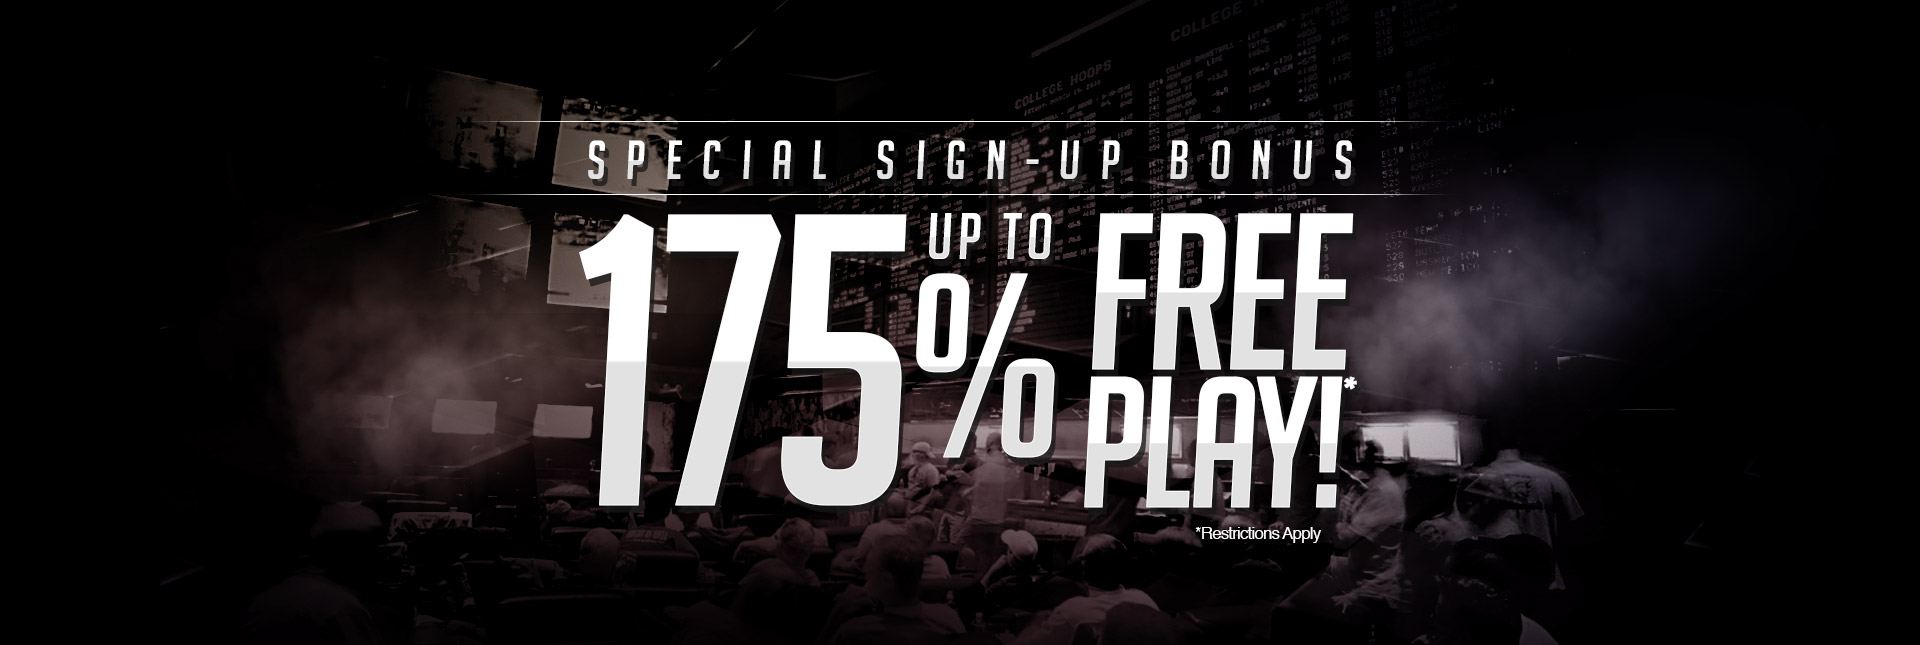 Sign-up Bonus - 175% Free Play